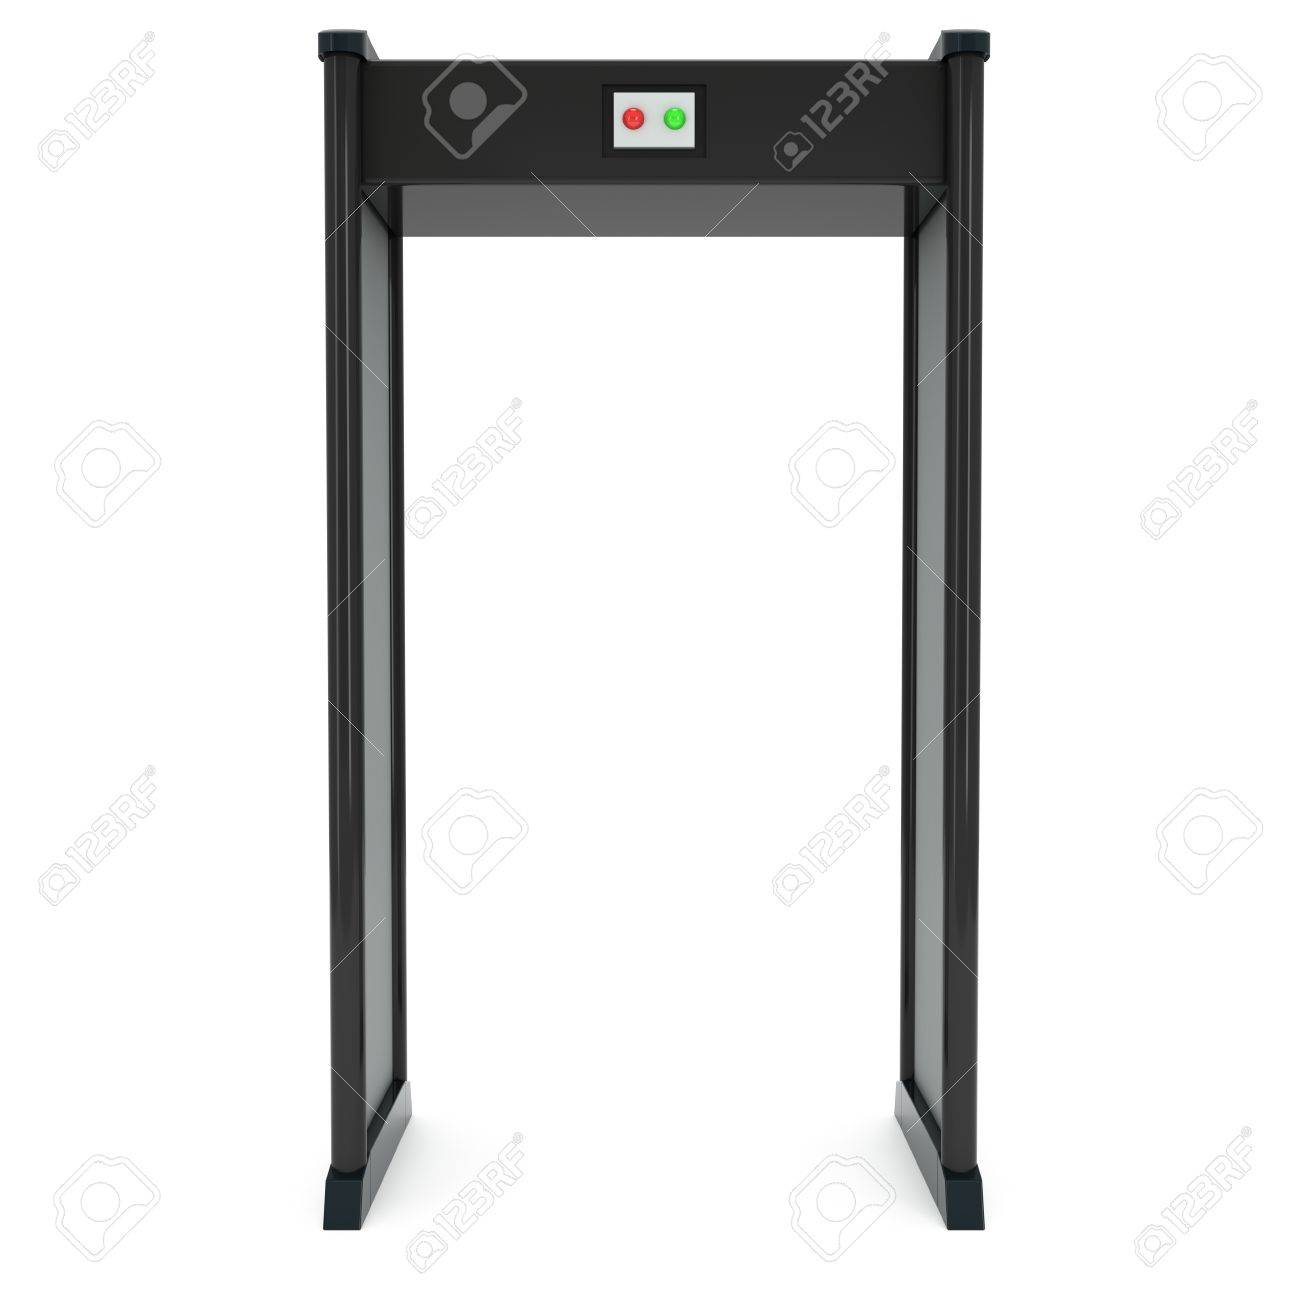 Metal detector scanner  3D render isolated on white  Airport